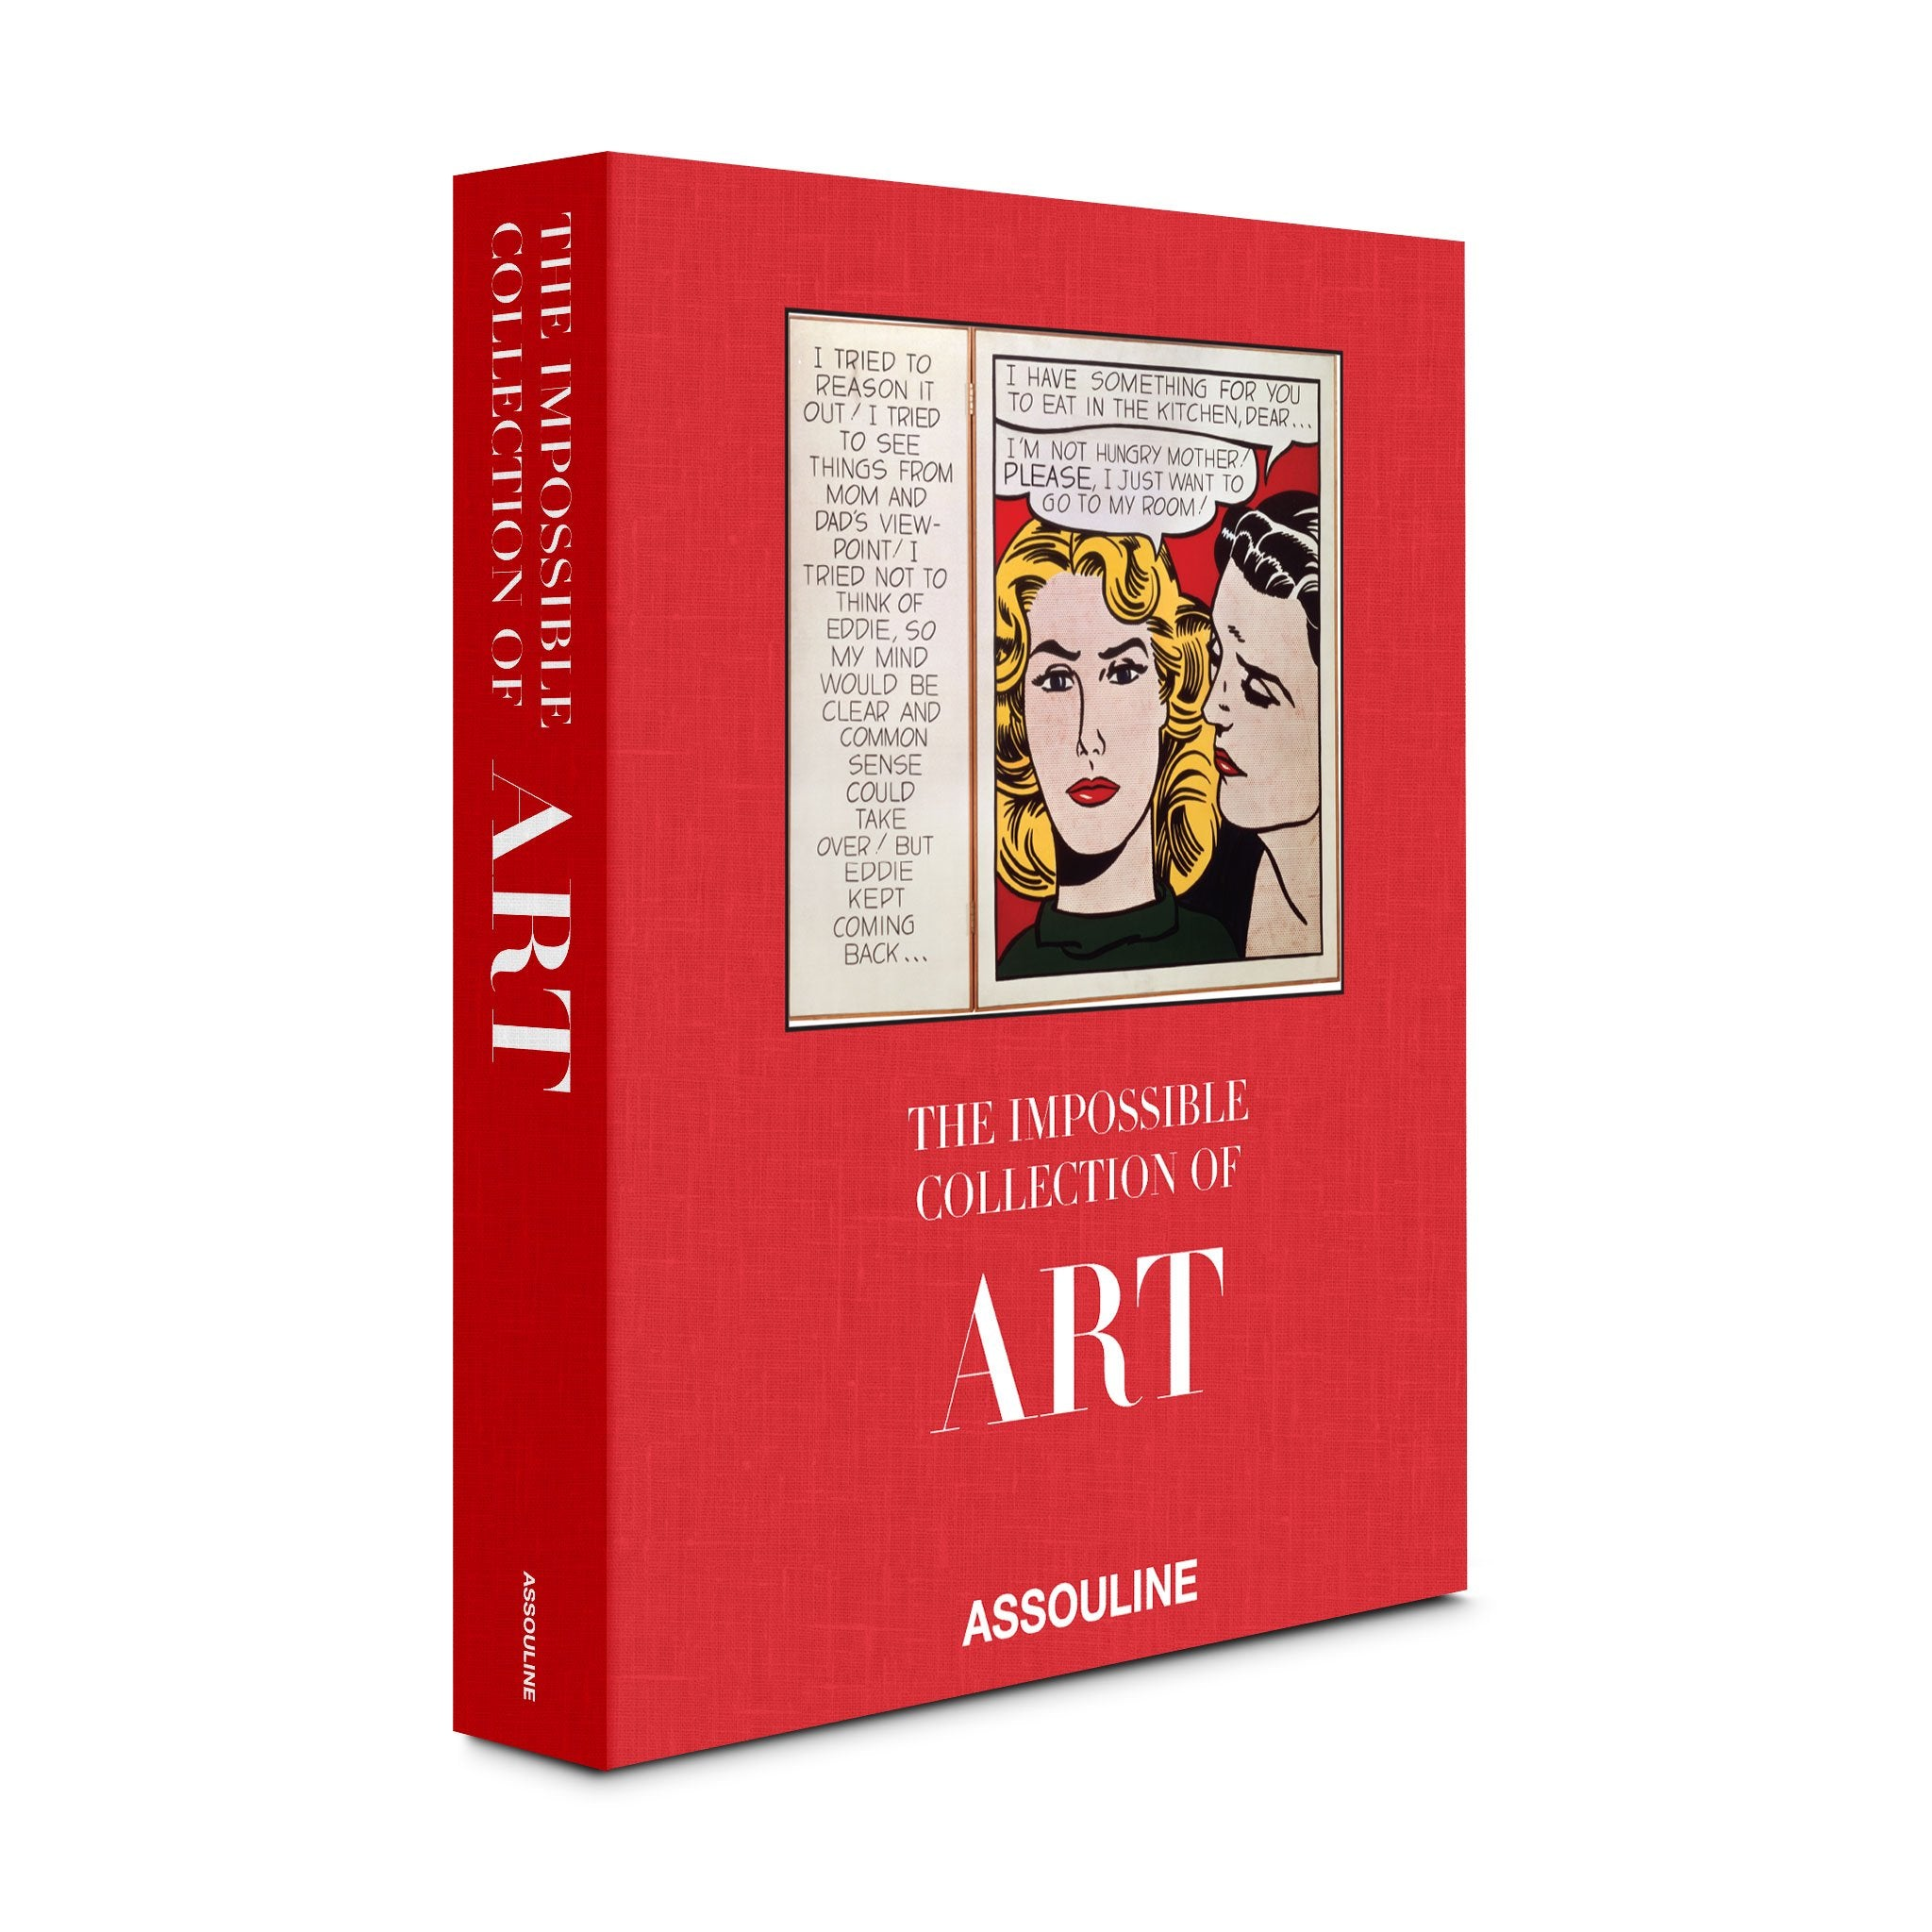 The Impossible Collection of Art - Assouline